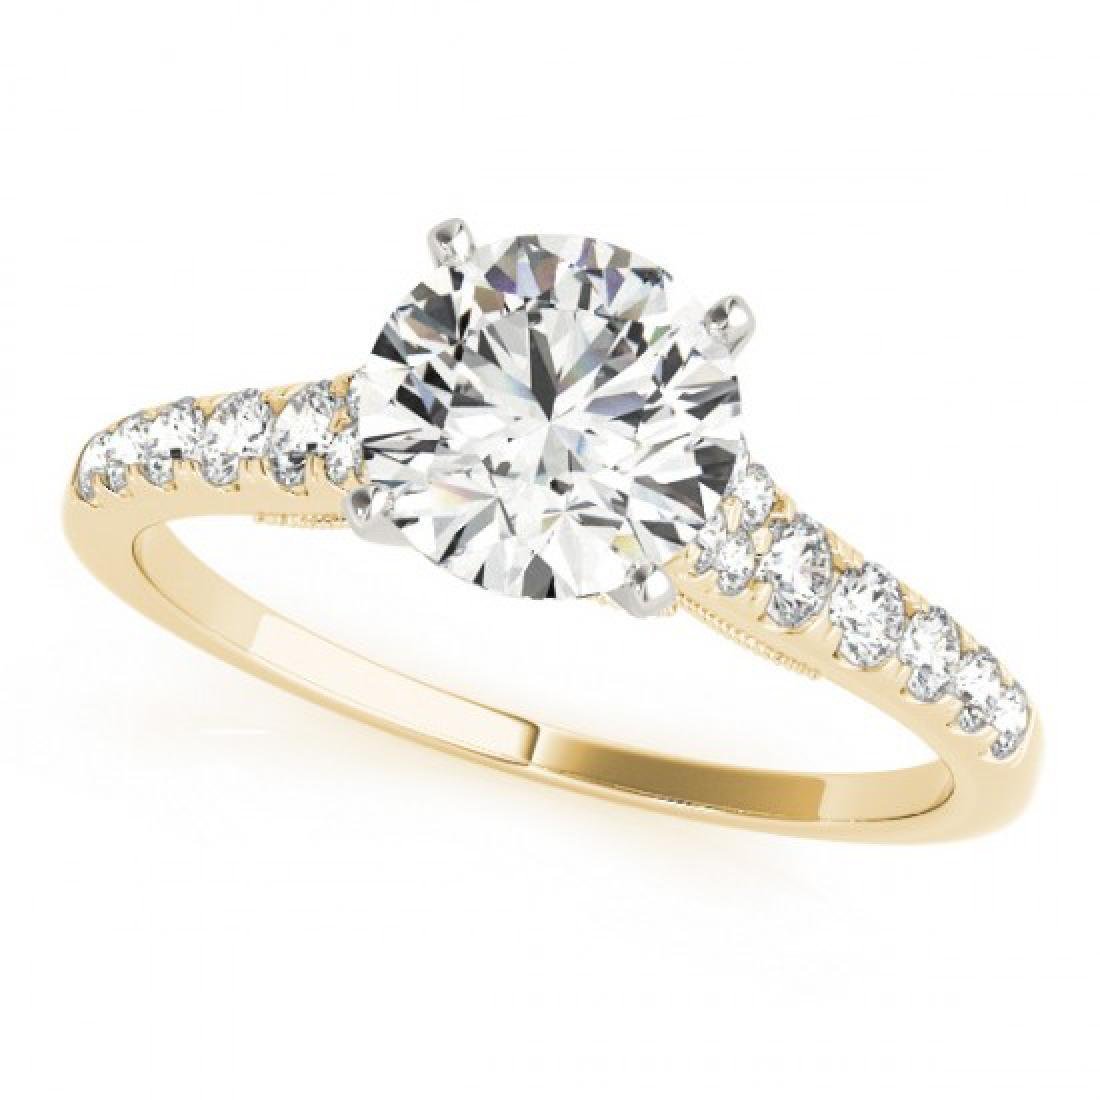 0.65 CTW Certified VS/SI Diamond Solitaire Ring 14K - 2